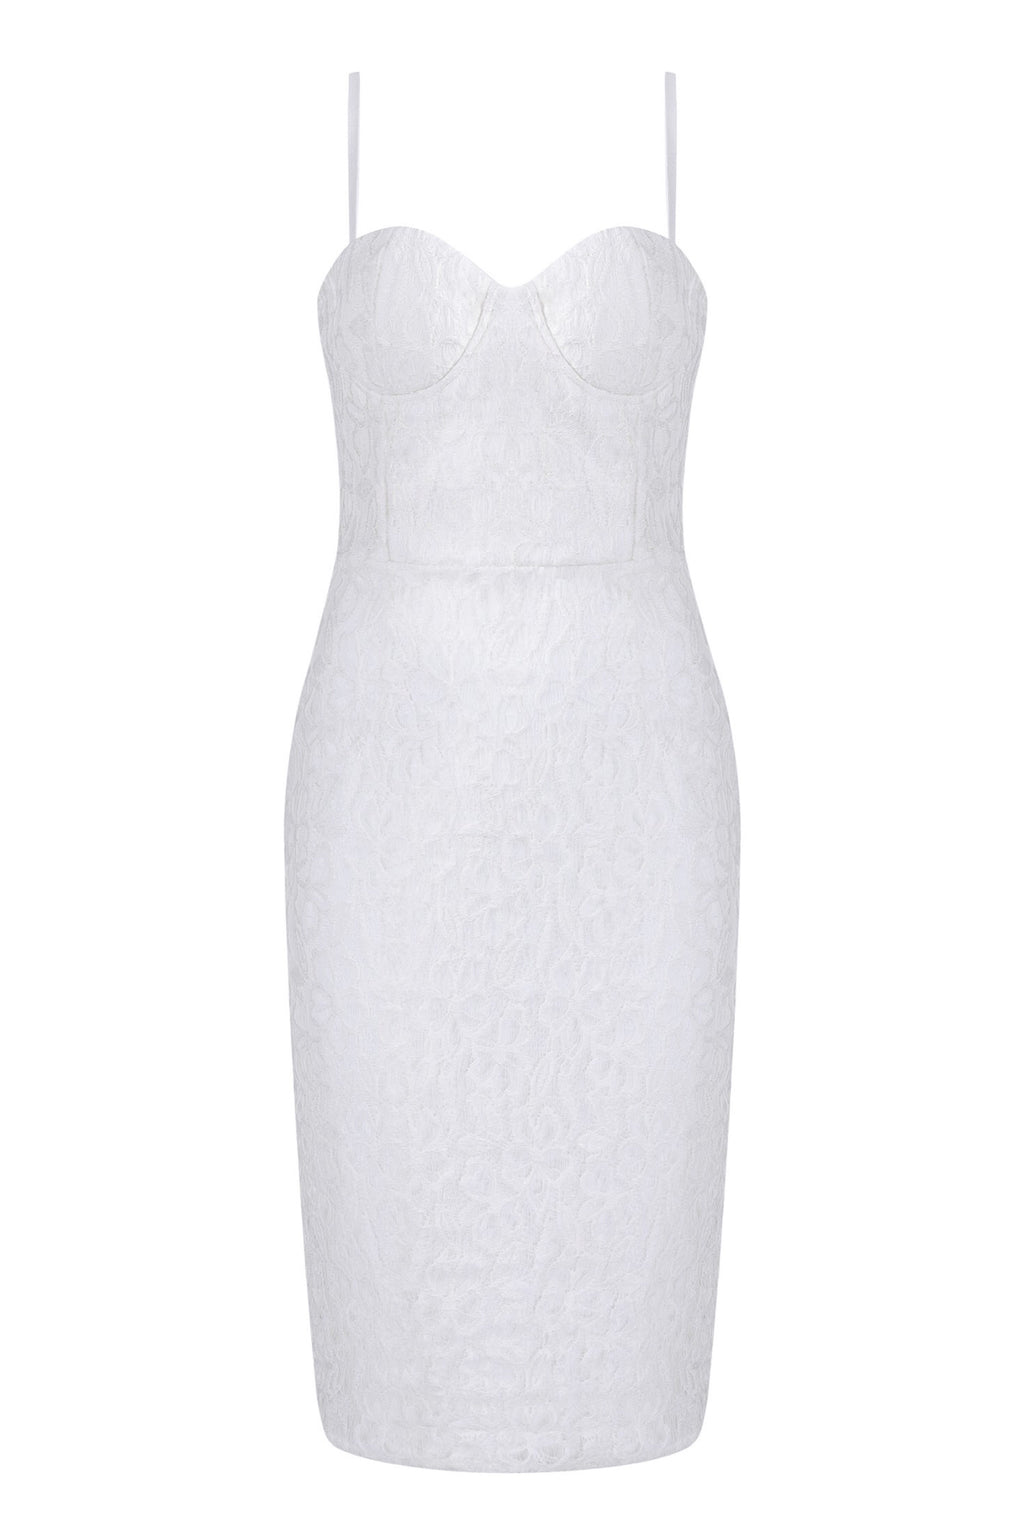 Special Me Midi Bandage Lace Dress